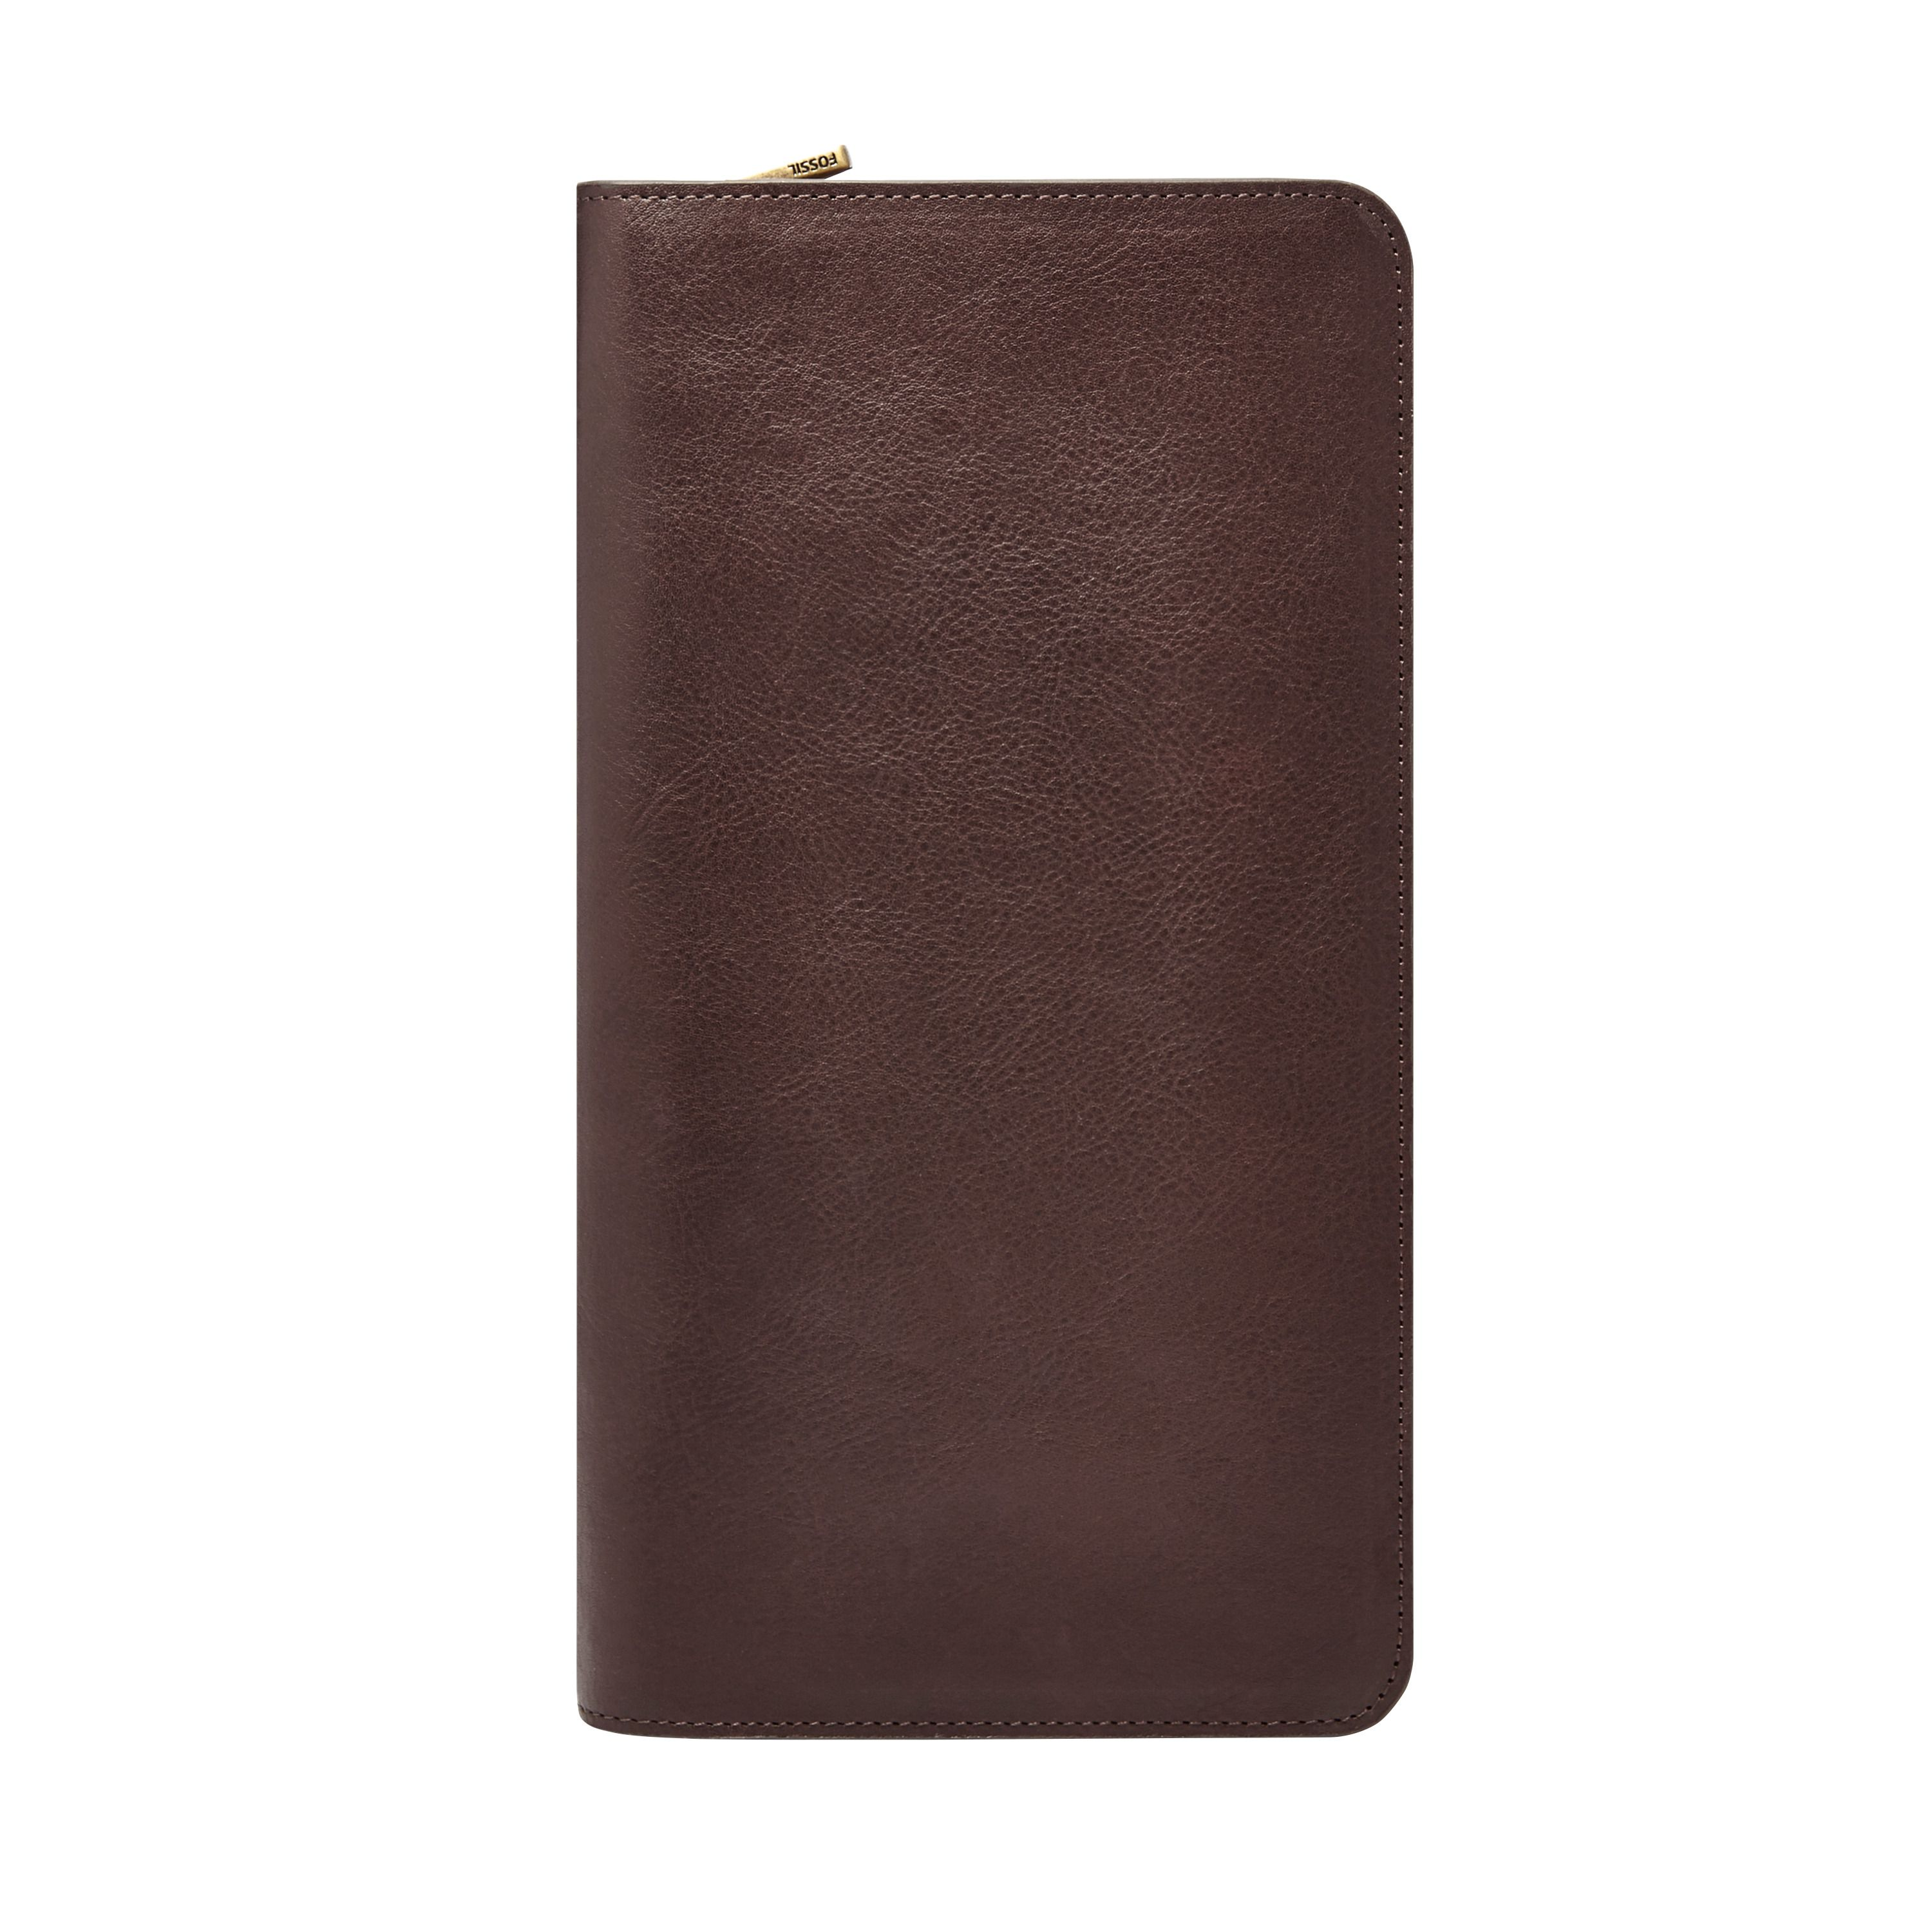 Fossil Mlg0334201 phone wallet Brown